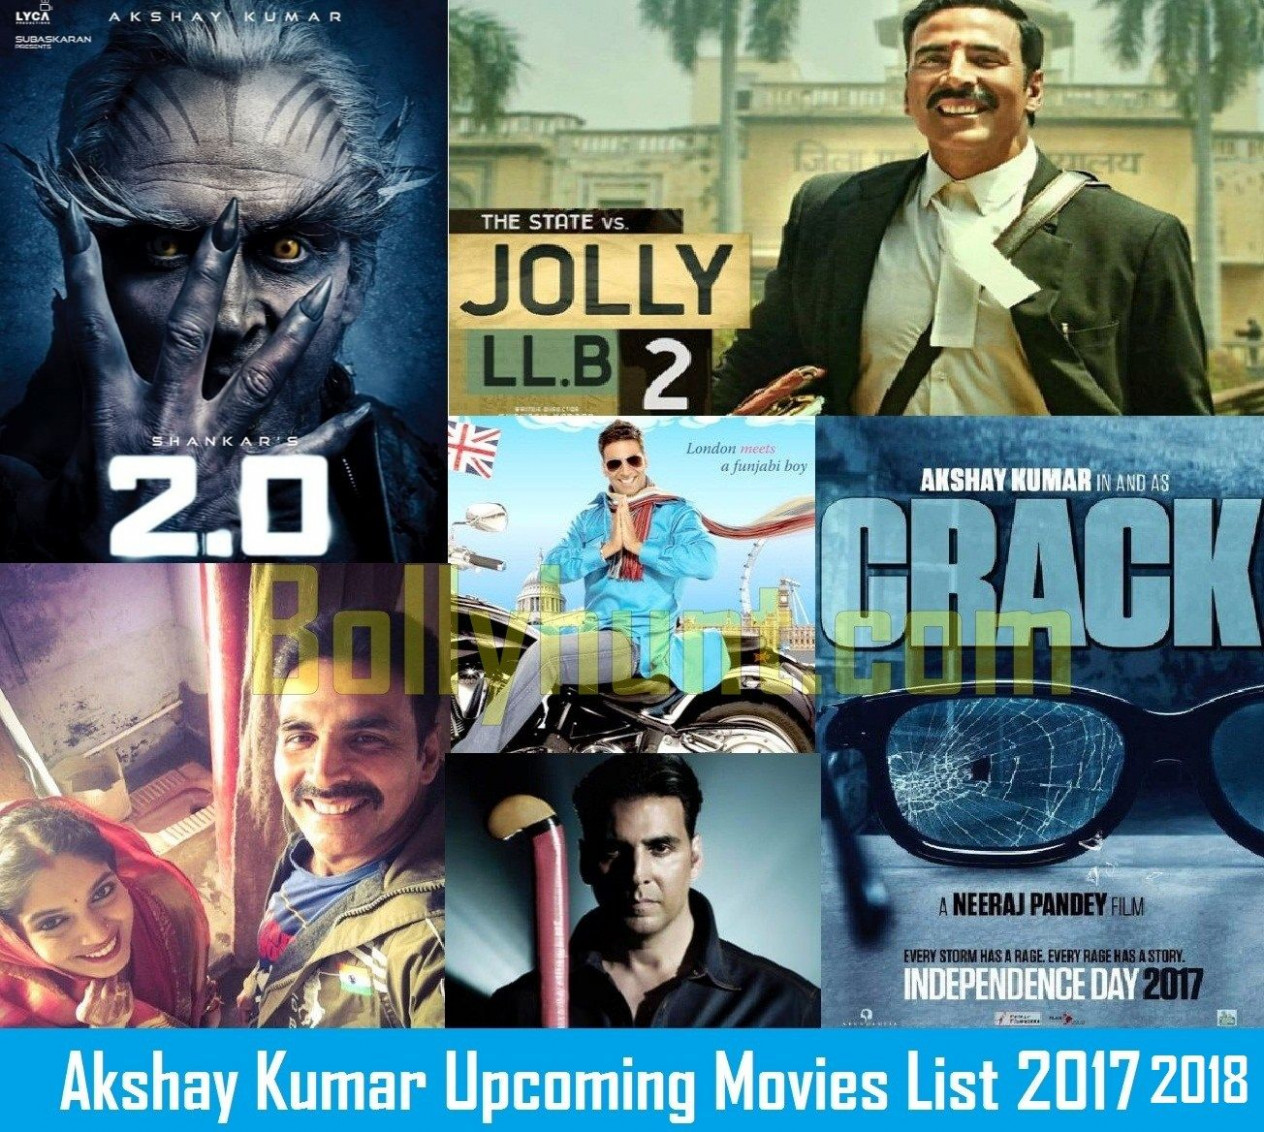 akshay kumar upcoming movies 2017 2018 with release date ...